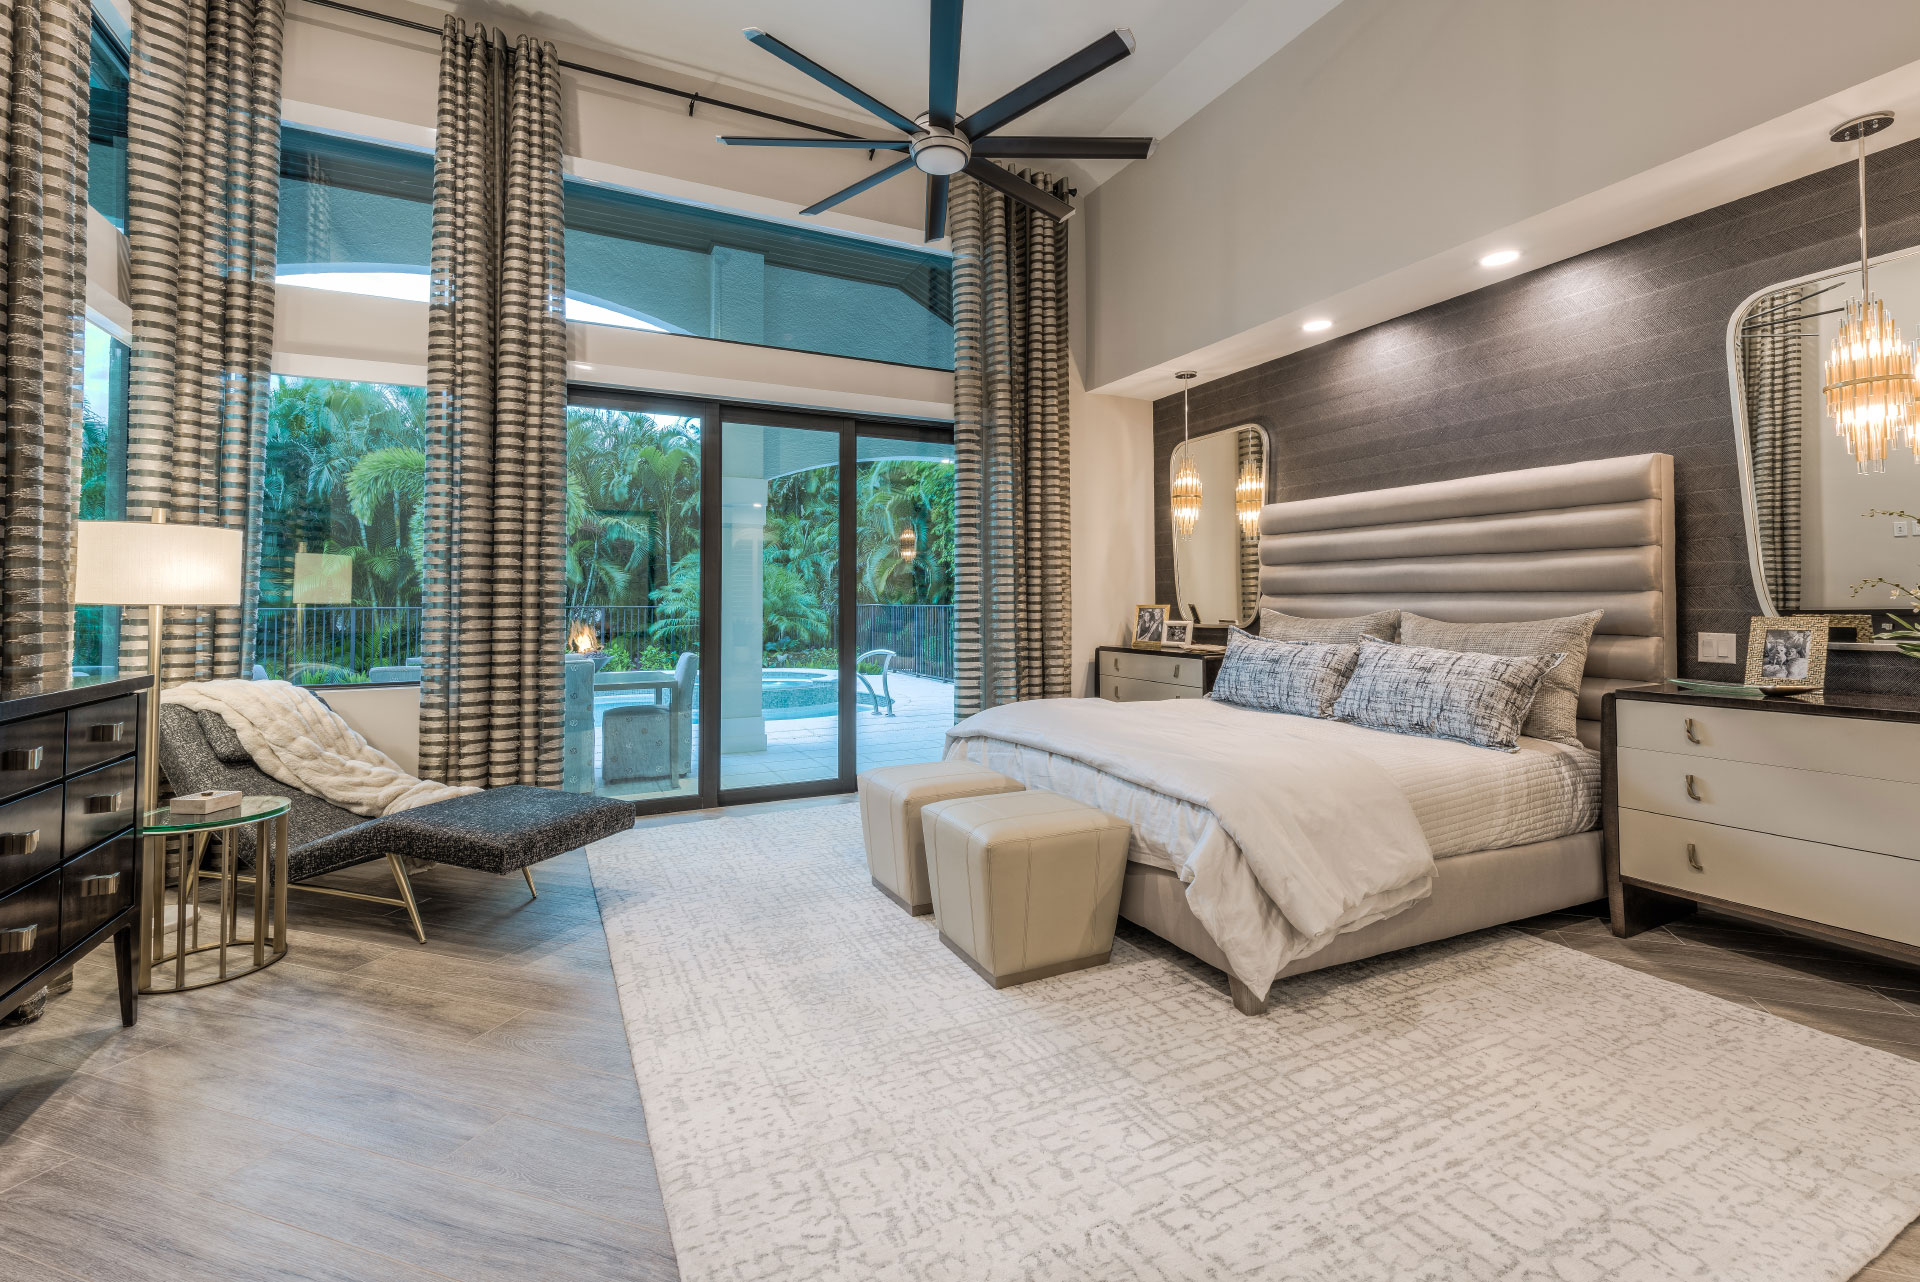 Lykos Group bedroom with window looking to the pool